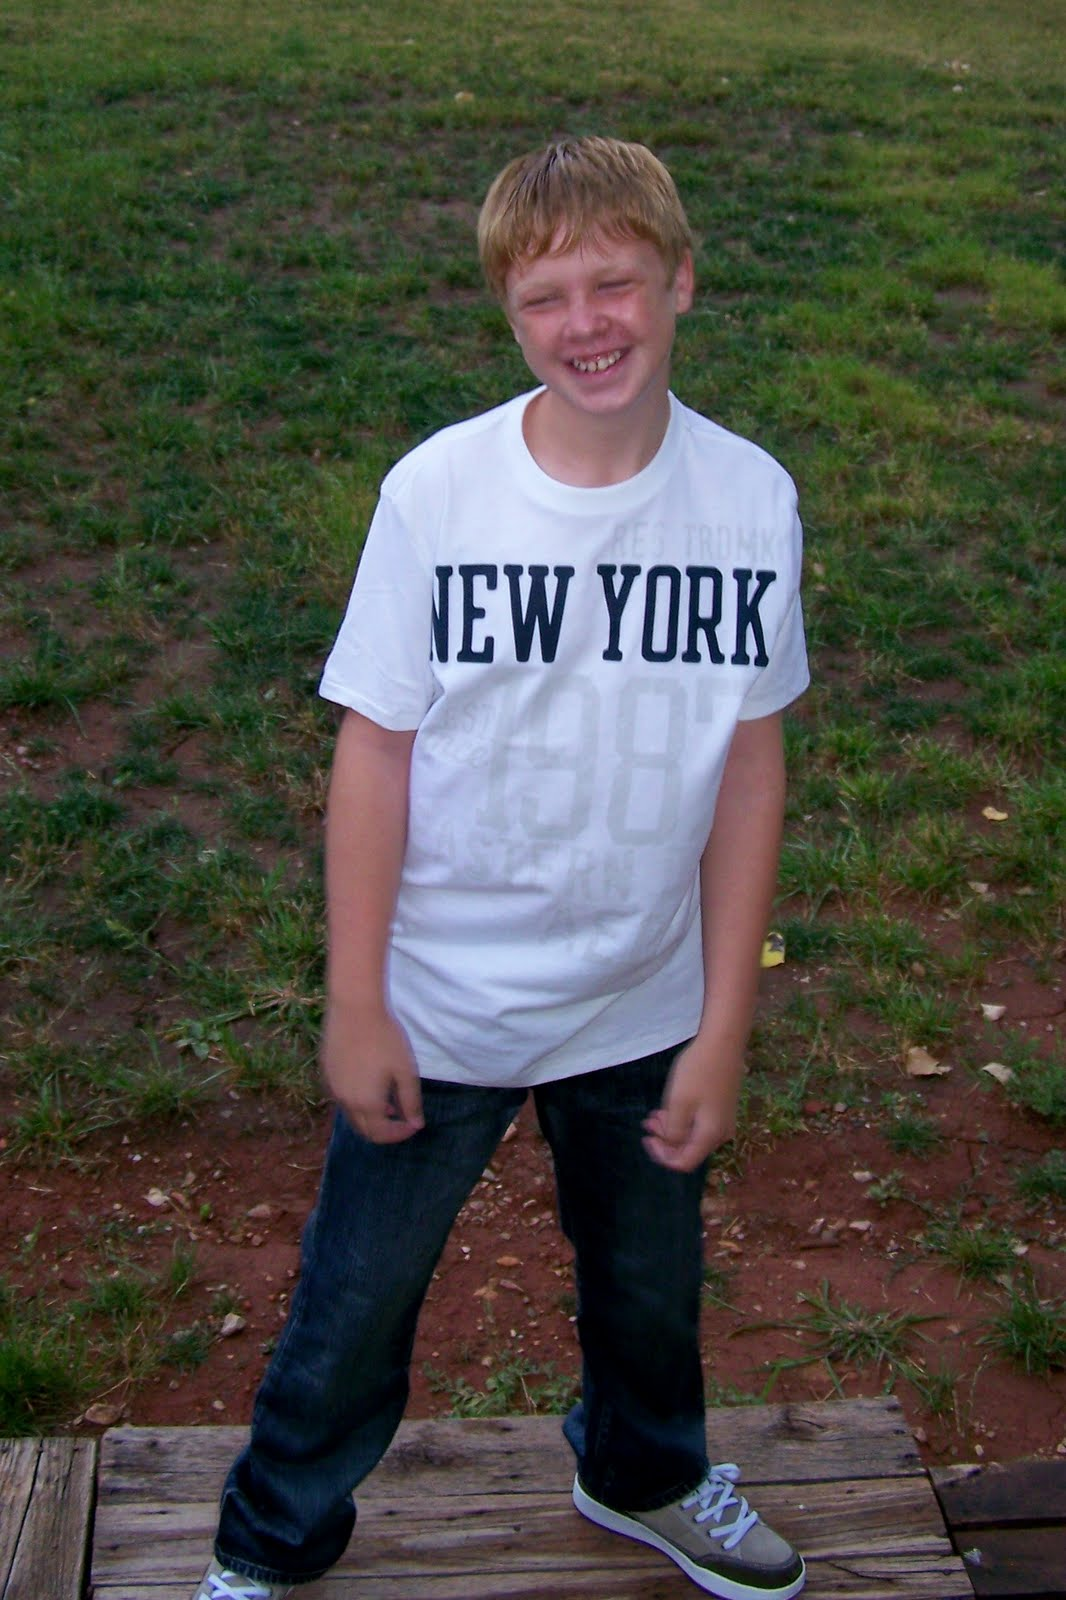 john in his perfect 1st day of school outfit to start 7th grade it ...